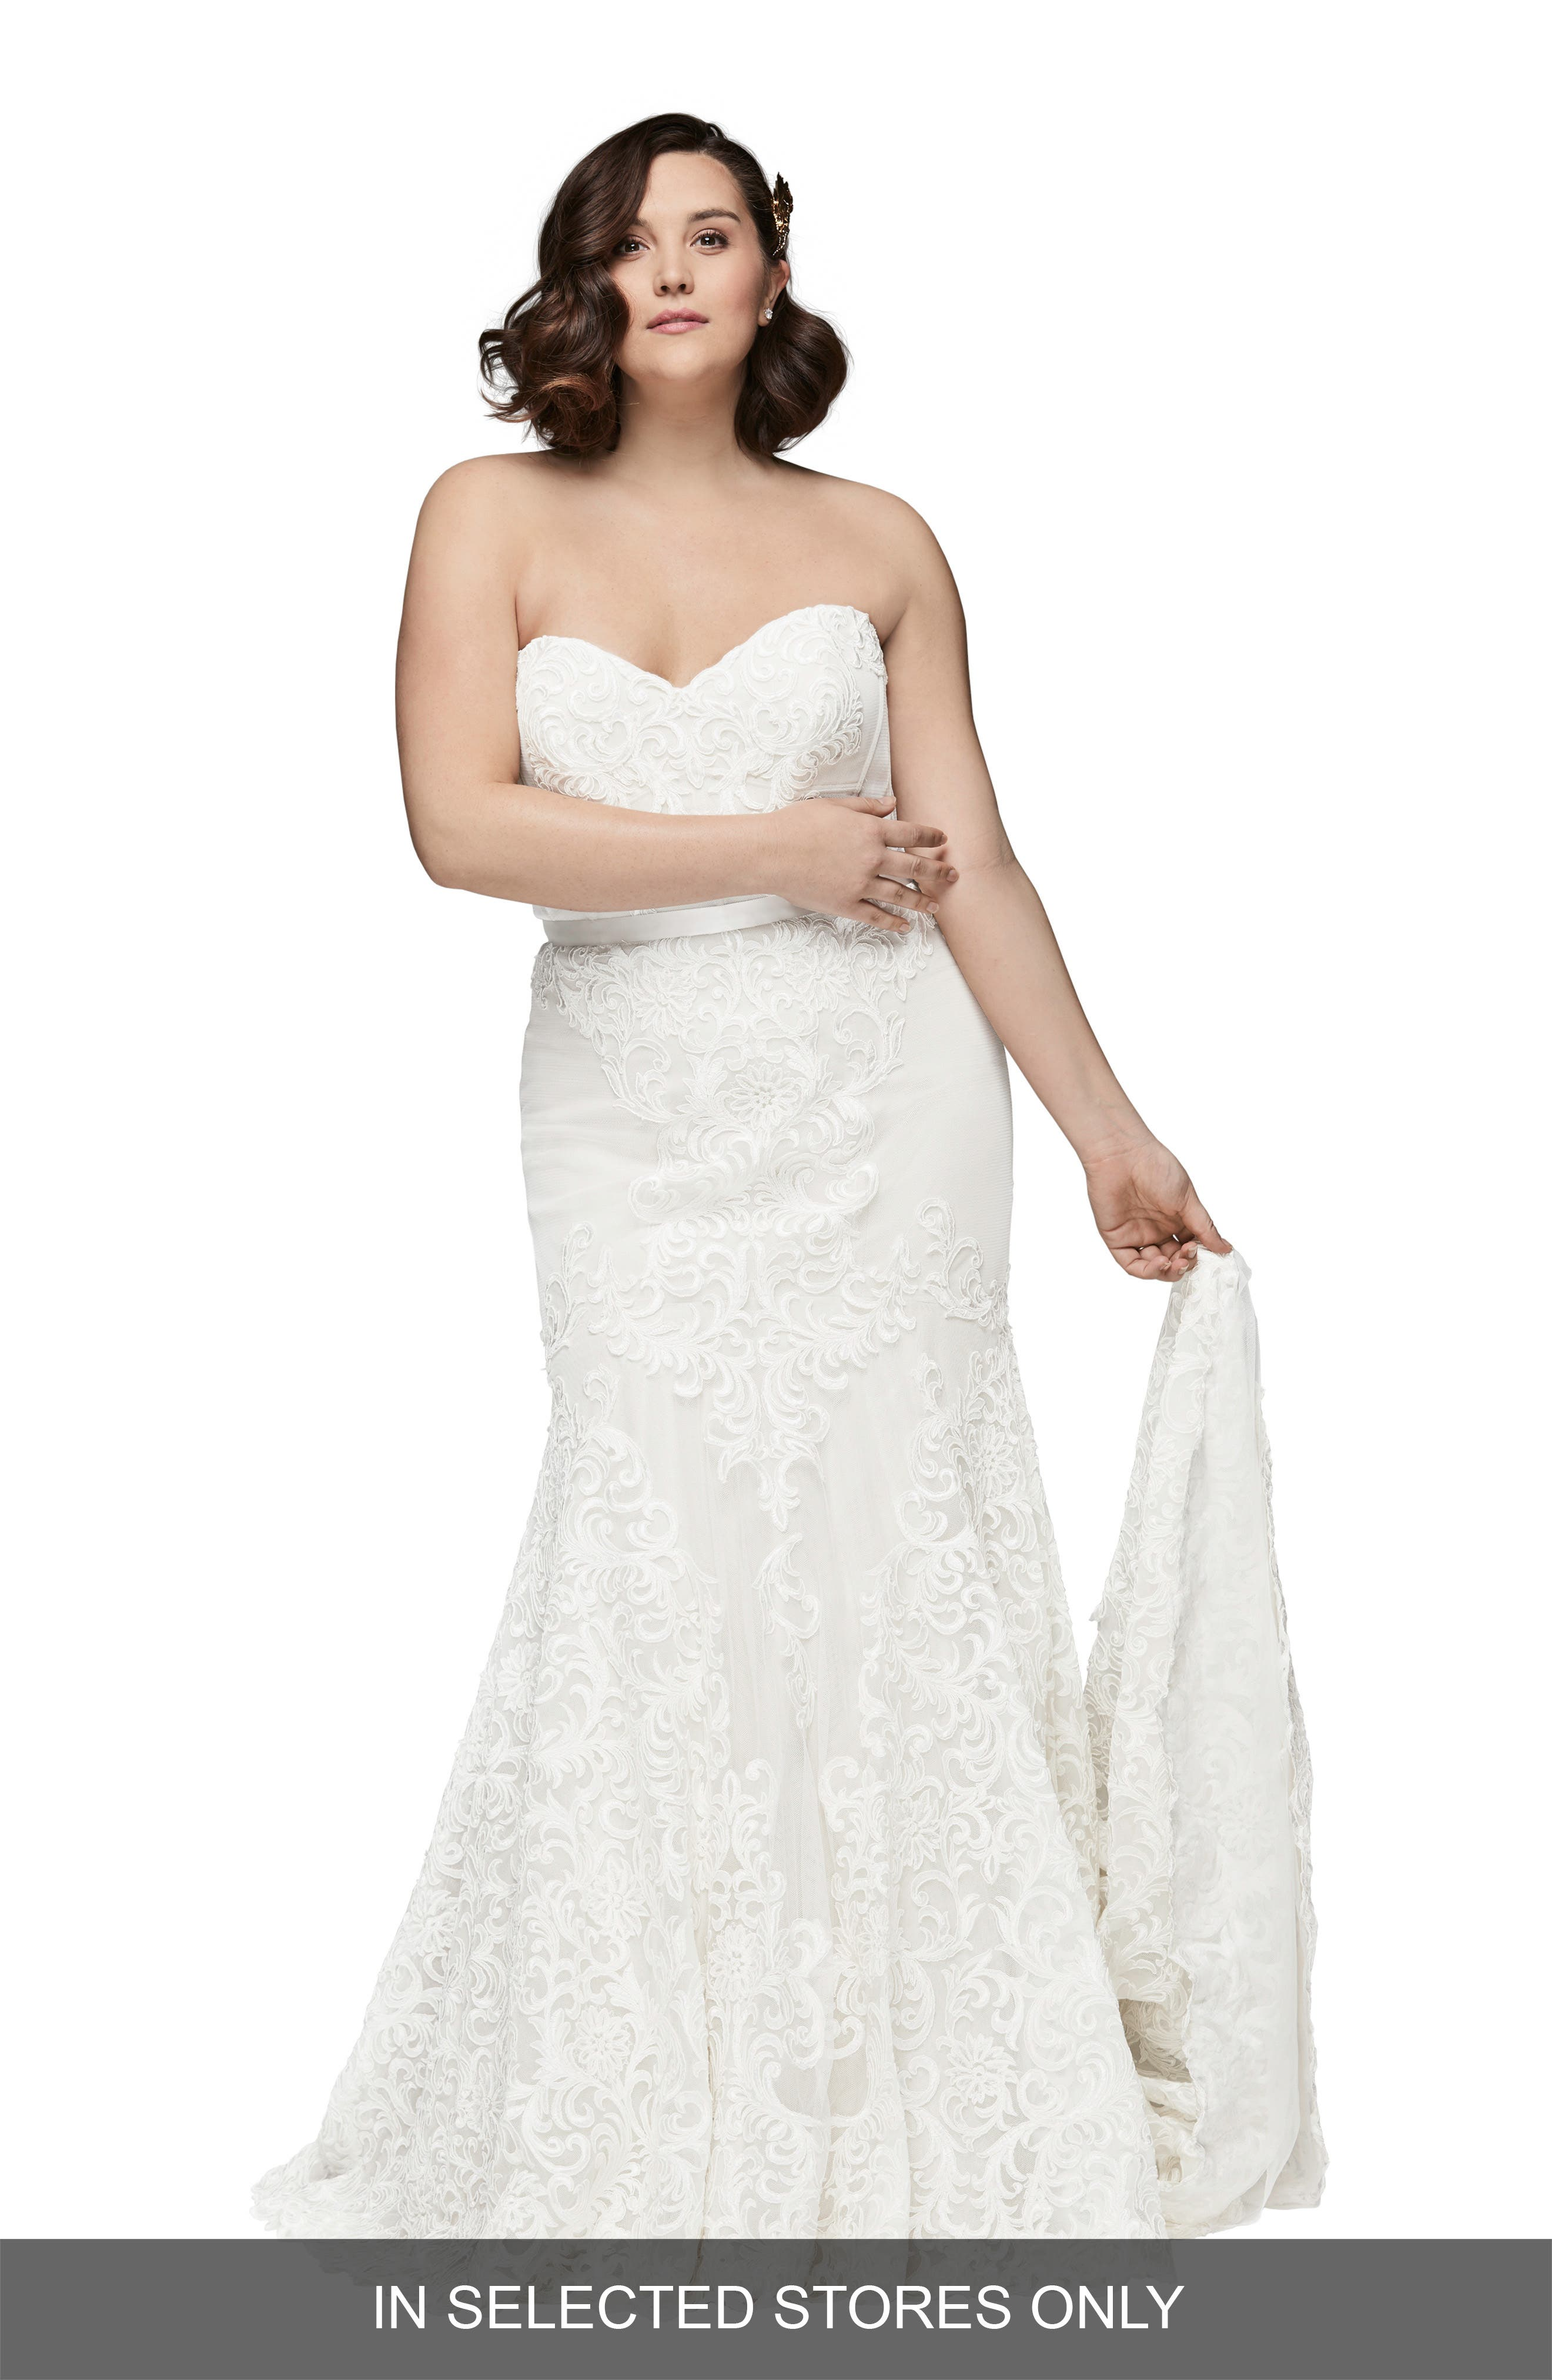 Alice Embroidered Strapless Trumpet Gown,                         Main,                         color, IVORY/ IVORY/ GARDENIA